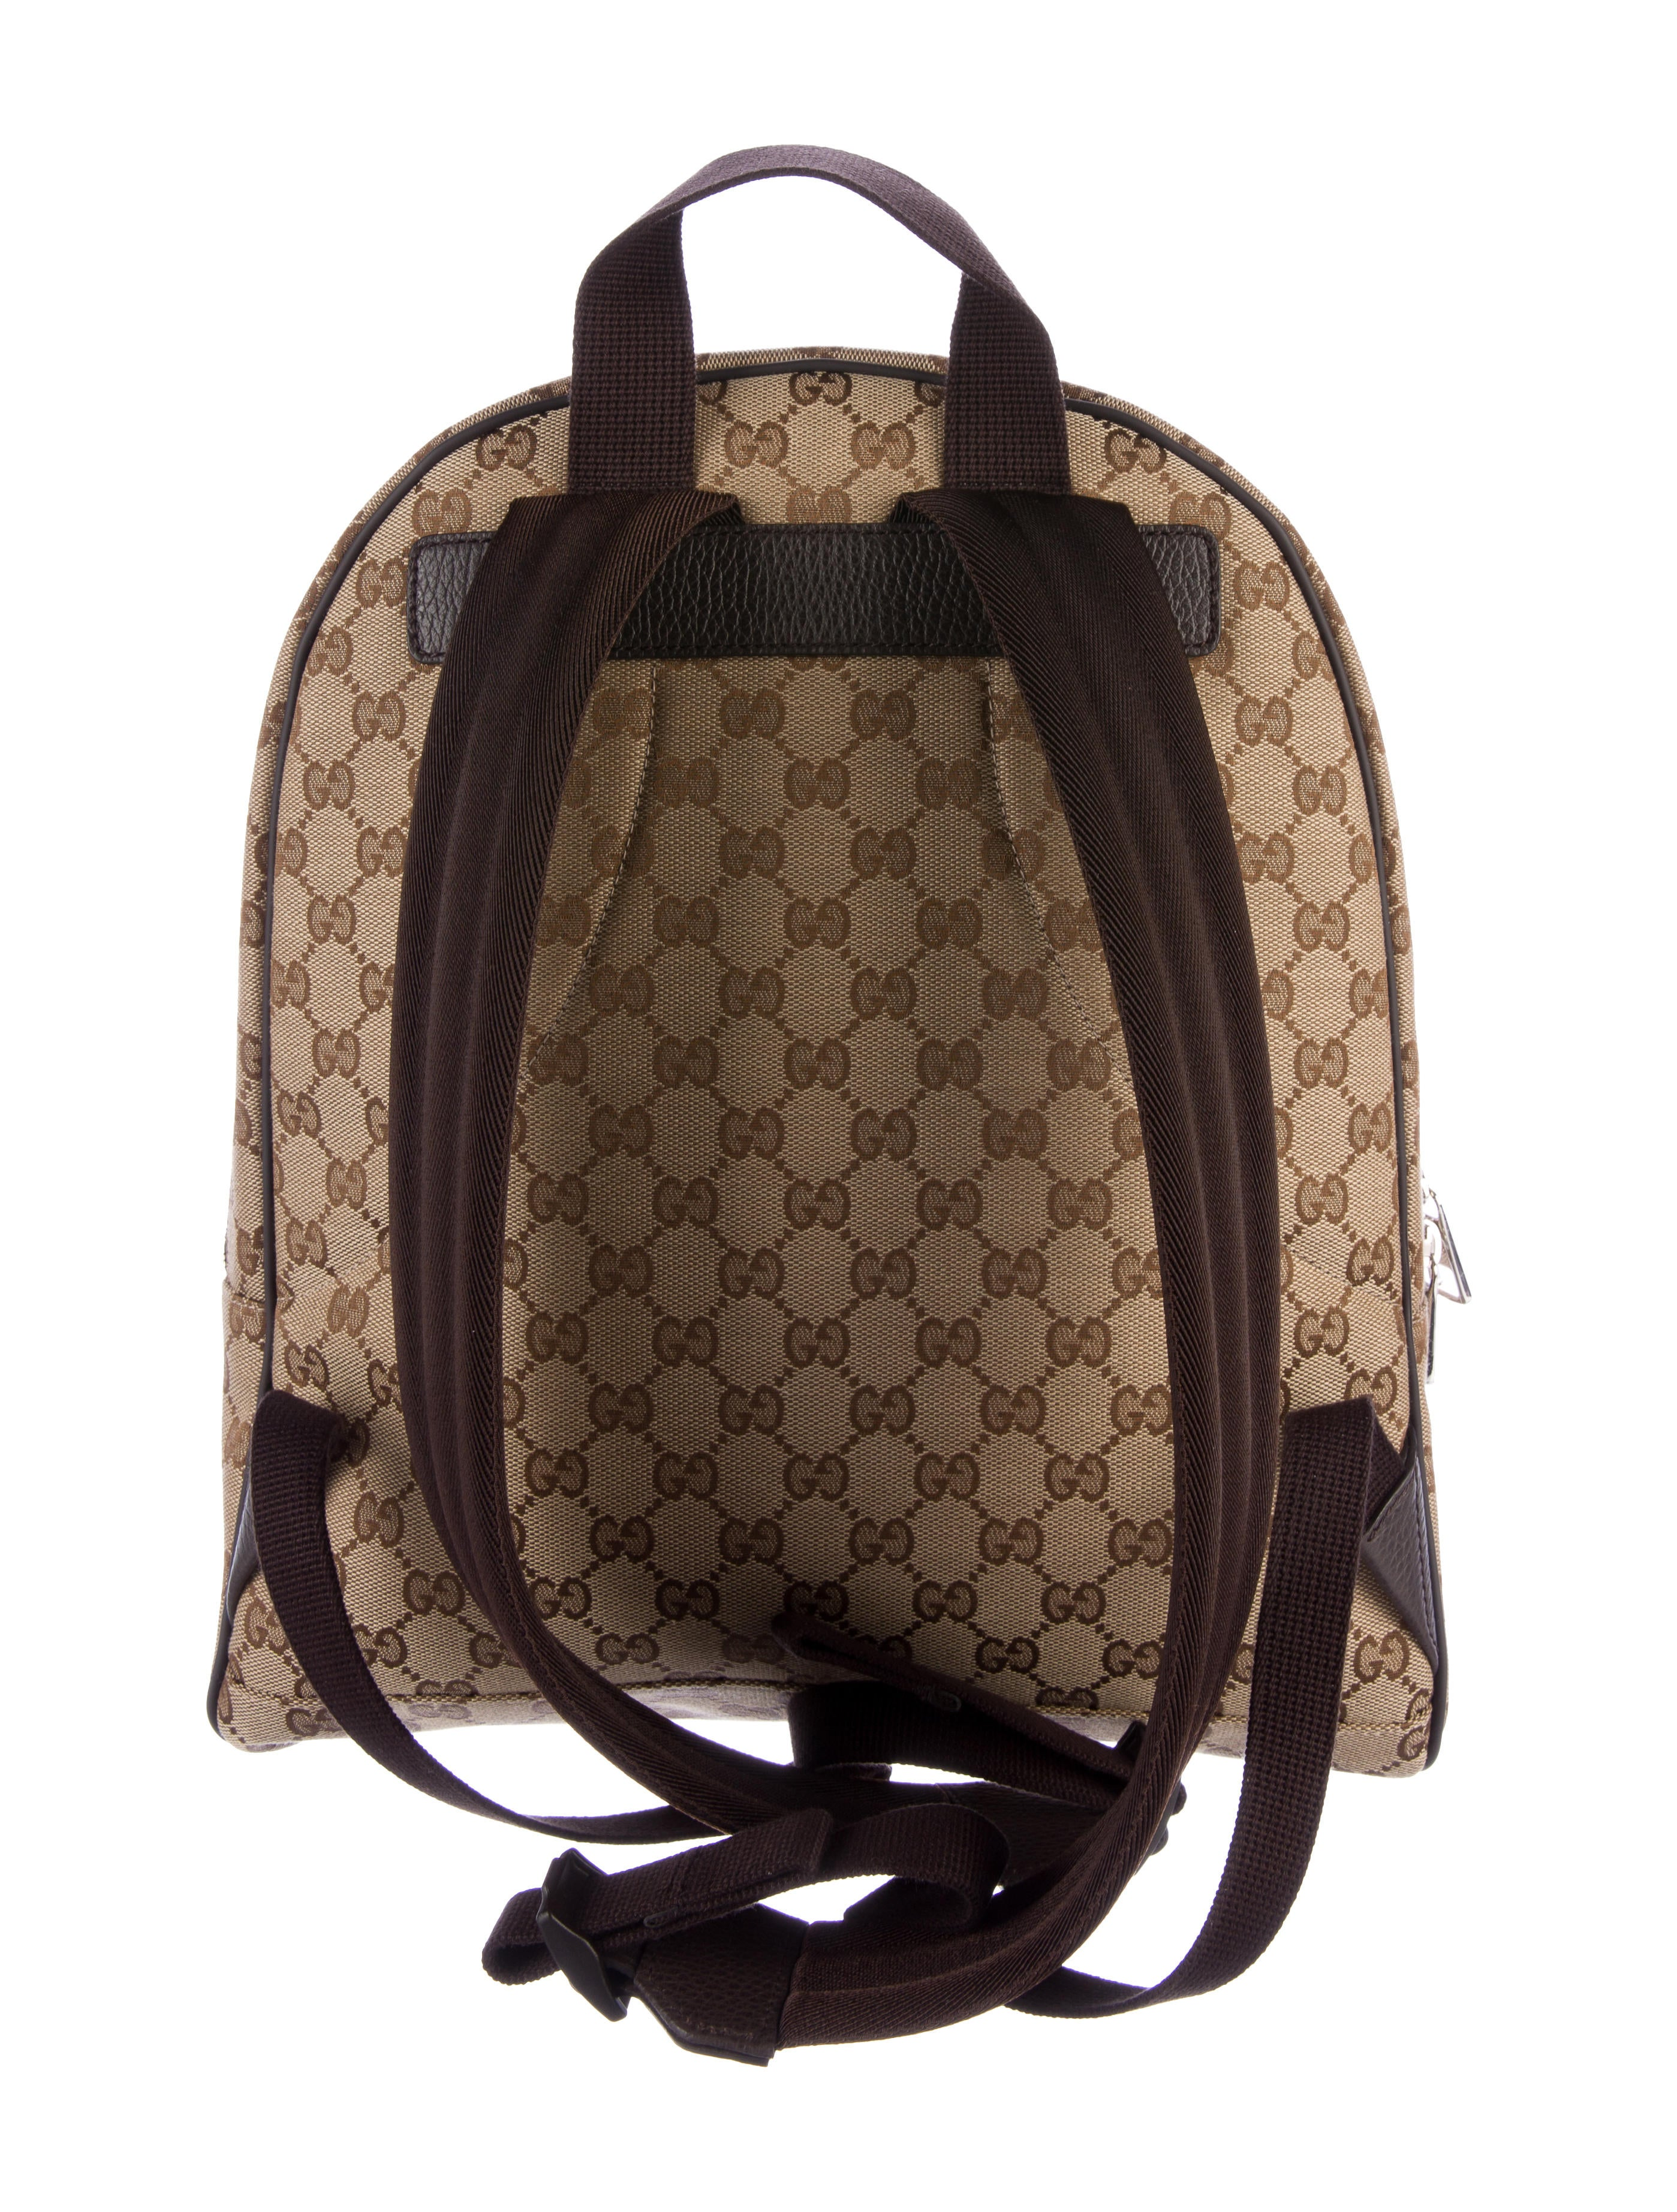 Gucci Gg Canvas Backpack Bags Guc149284 The Realreal